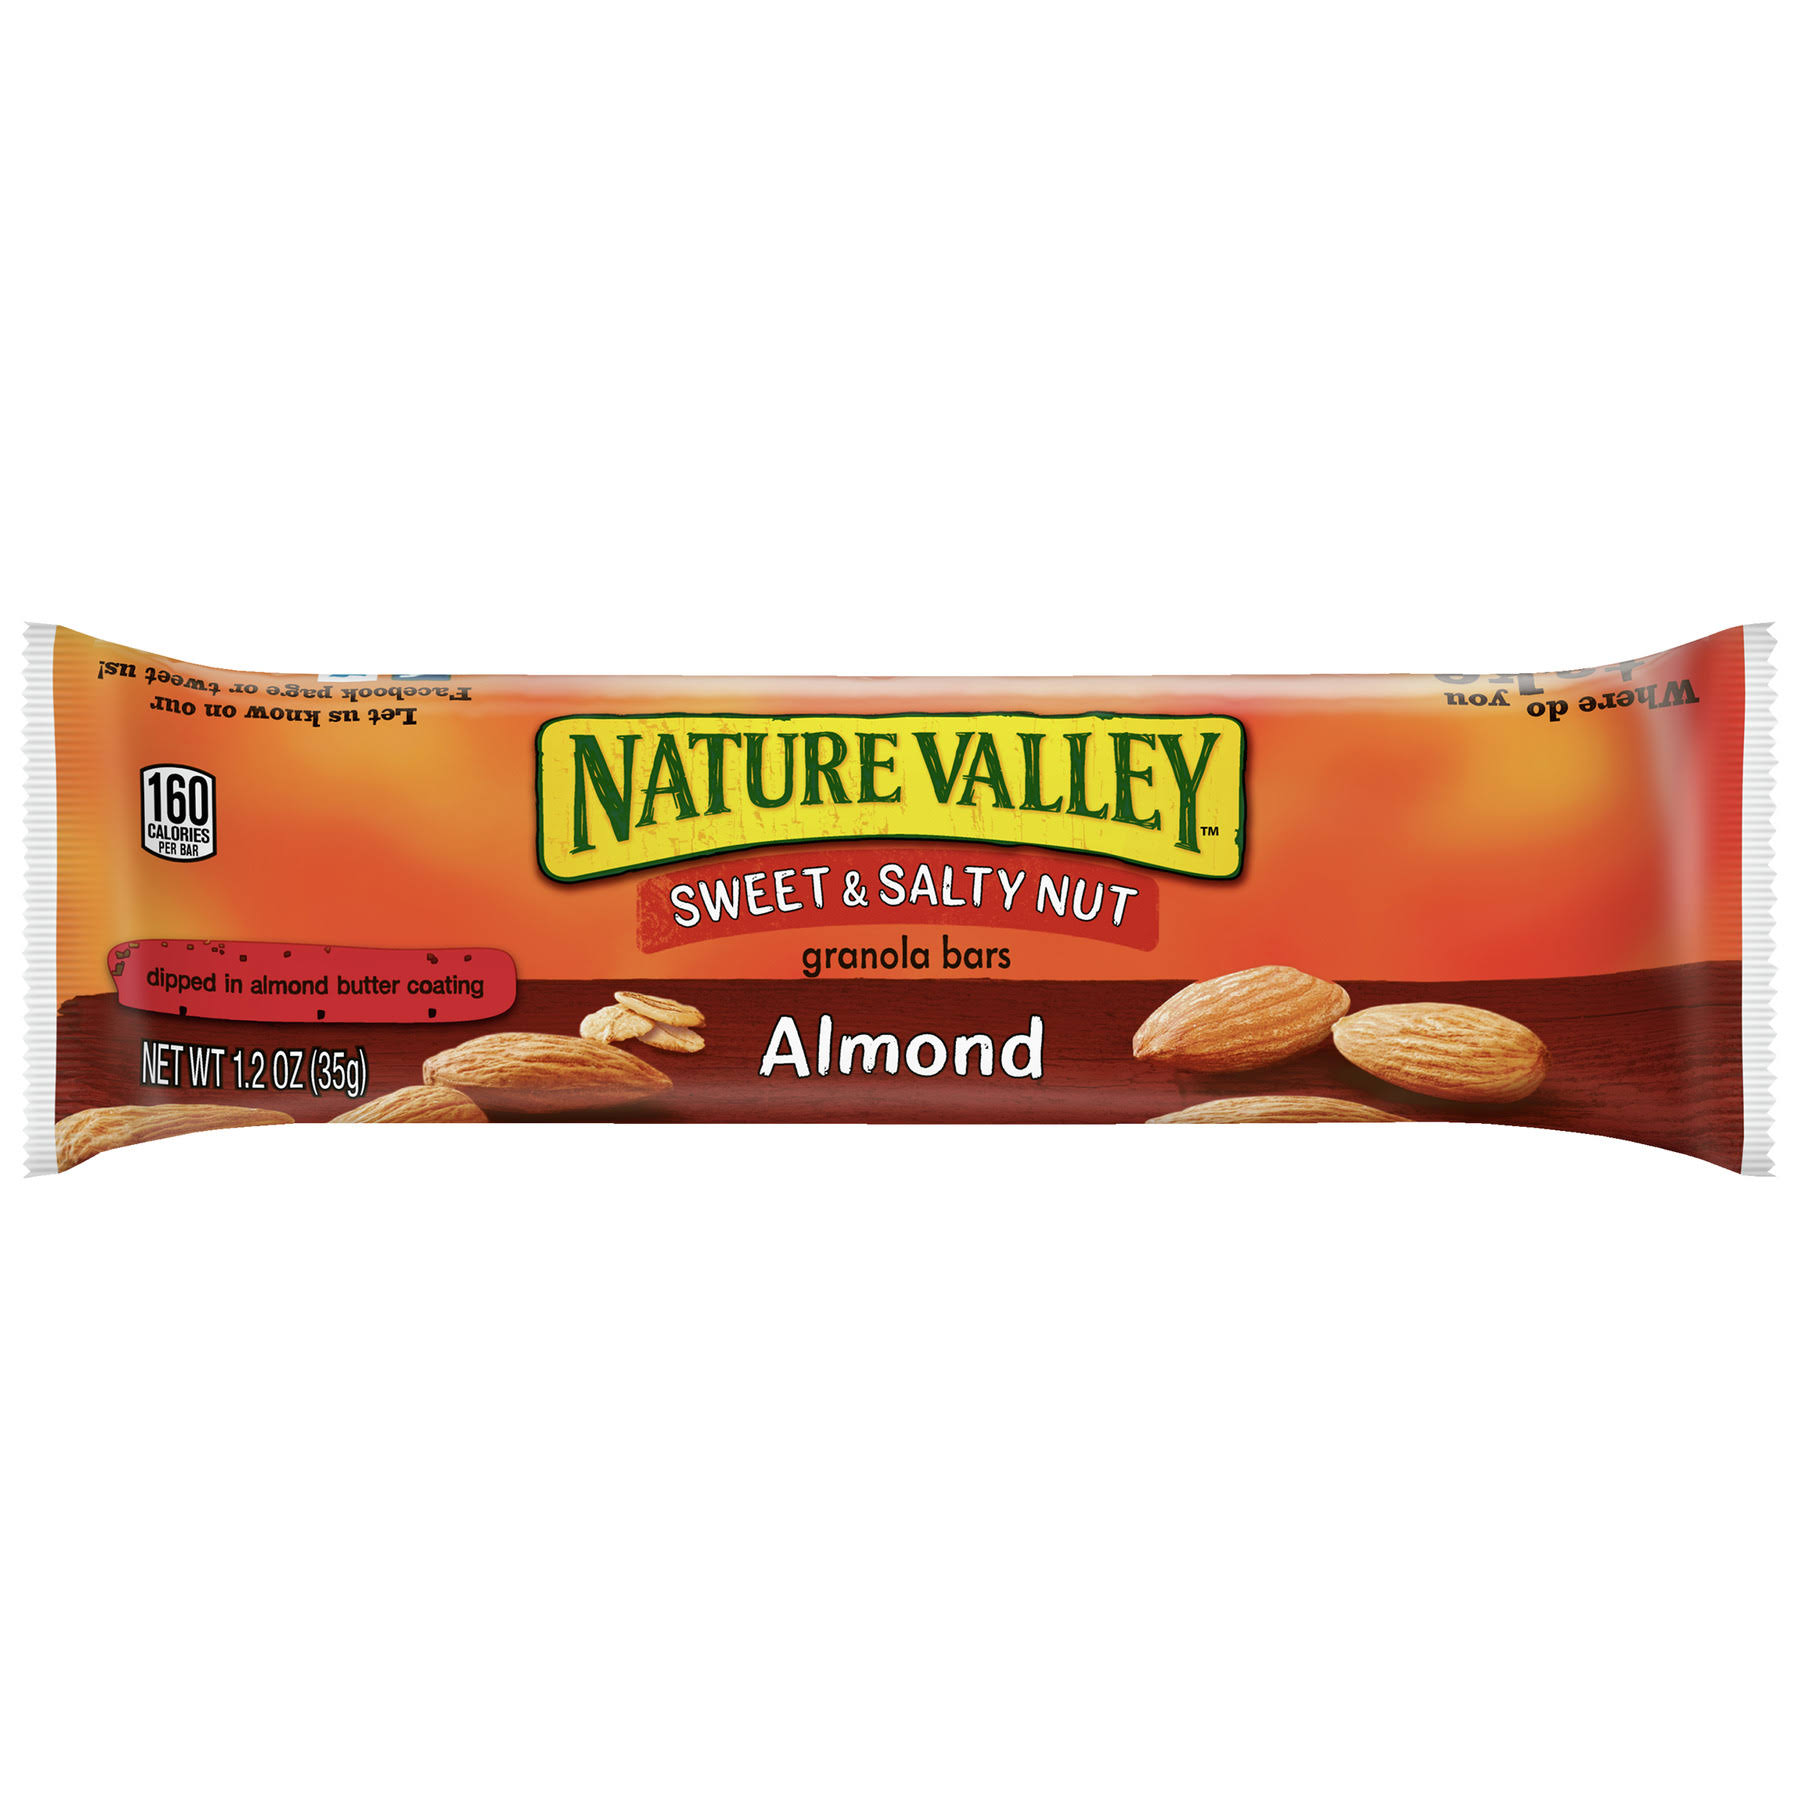 Nature Valley Sweet & Salty Nut Granola Bar - Almond, 1.2oz